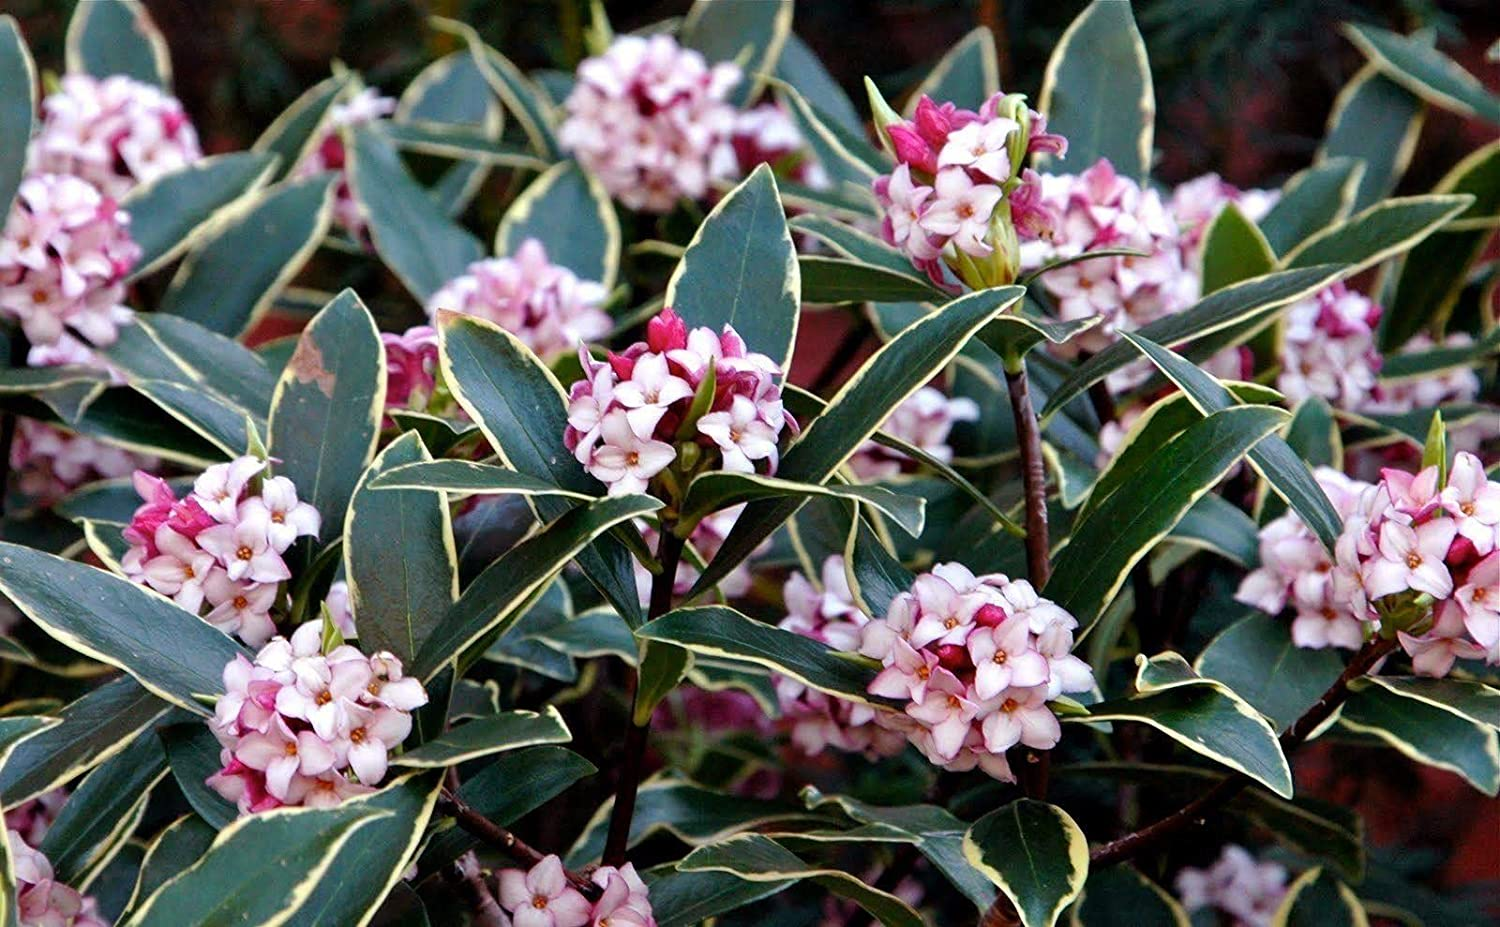 Daphne odora Aureomarginata - New Winter Daphne - 3 Plants in 9cm Pots IR Plant and Garden Centre